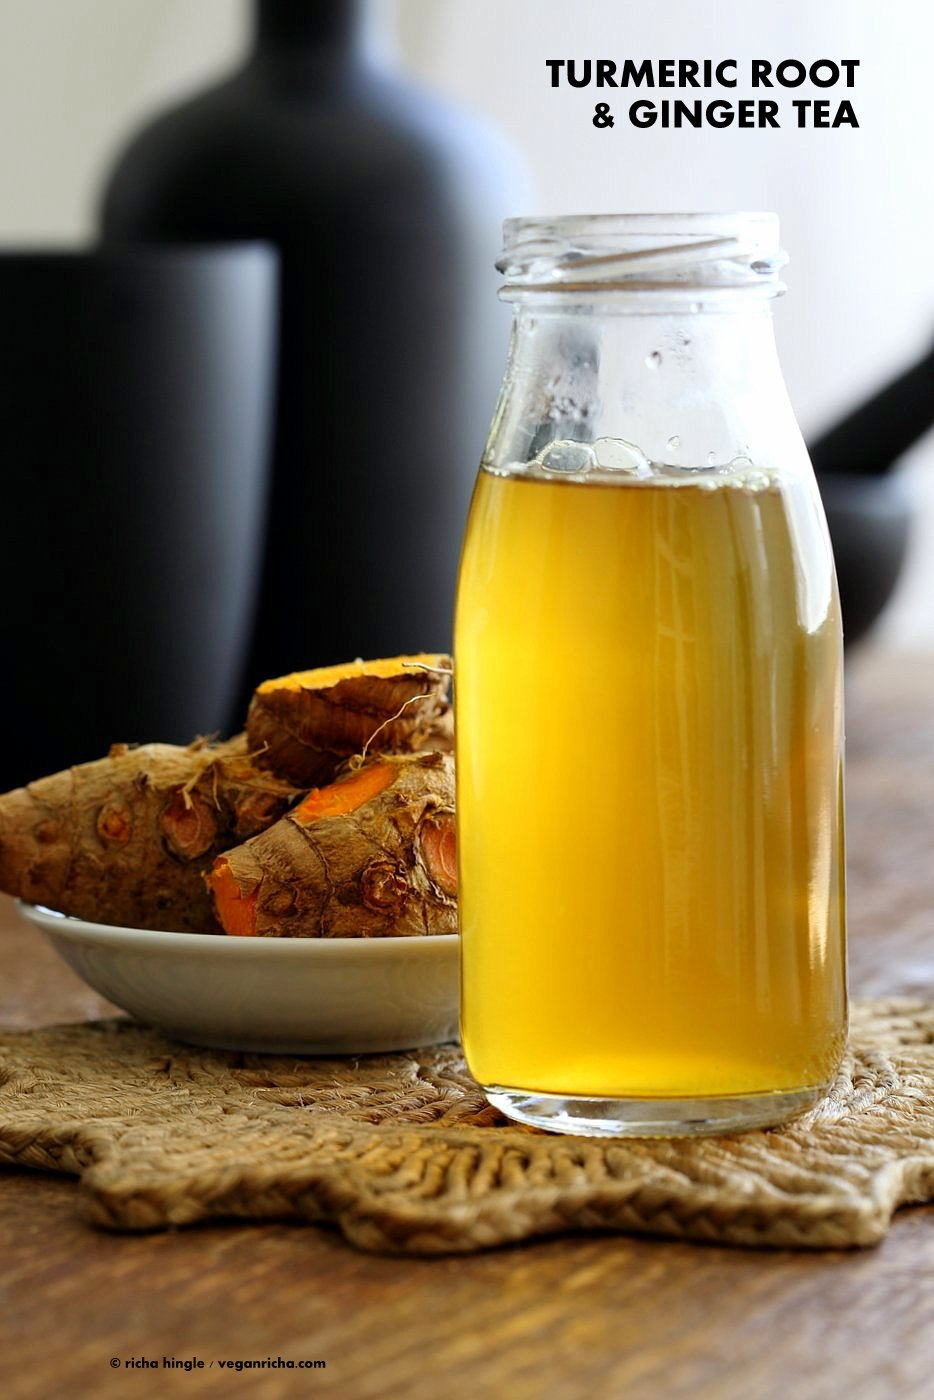 vegan-ginger-turmeric-root-tea-curry-paste-5460.jpg